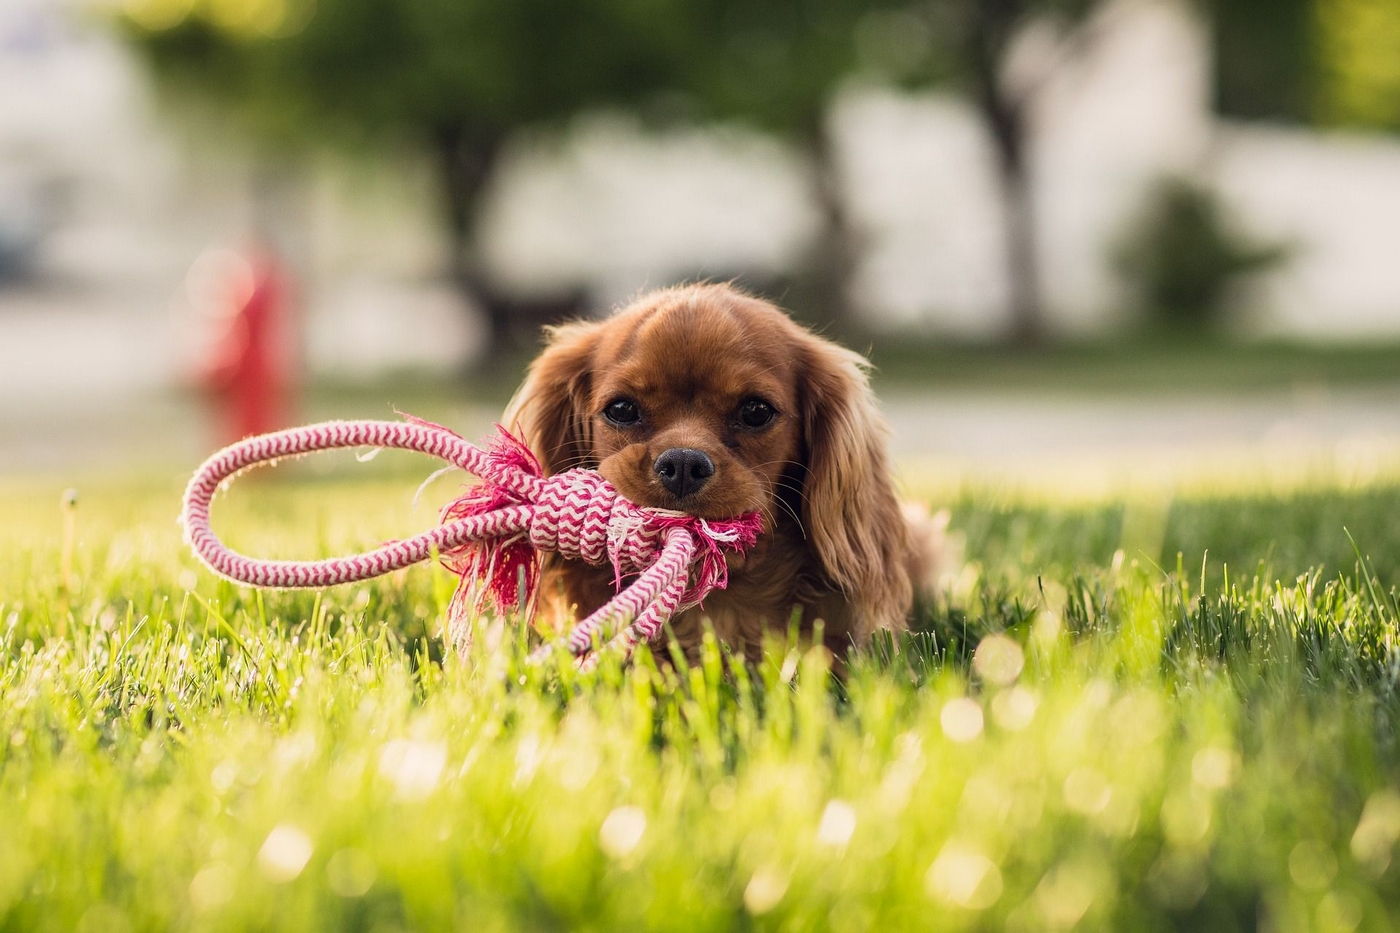 Image of a small dog chewing dog toy